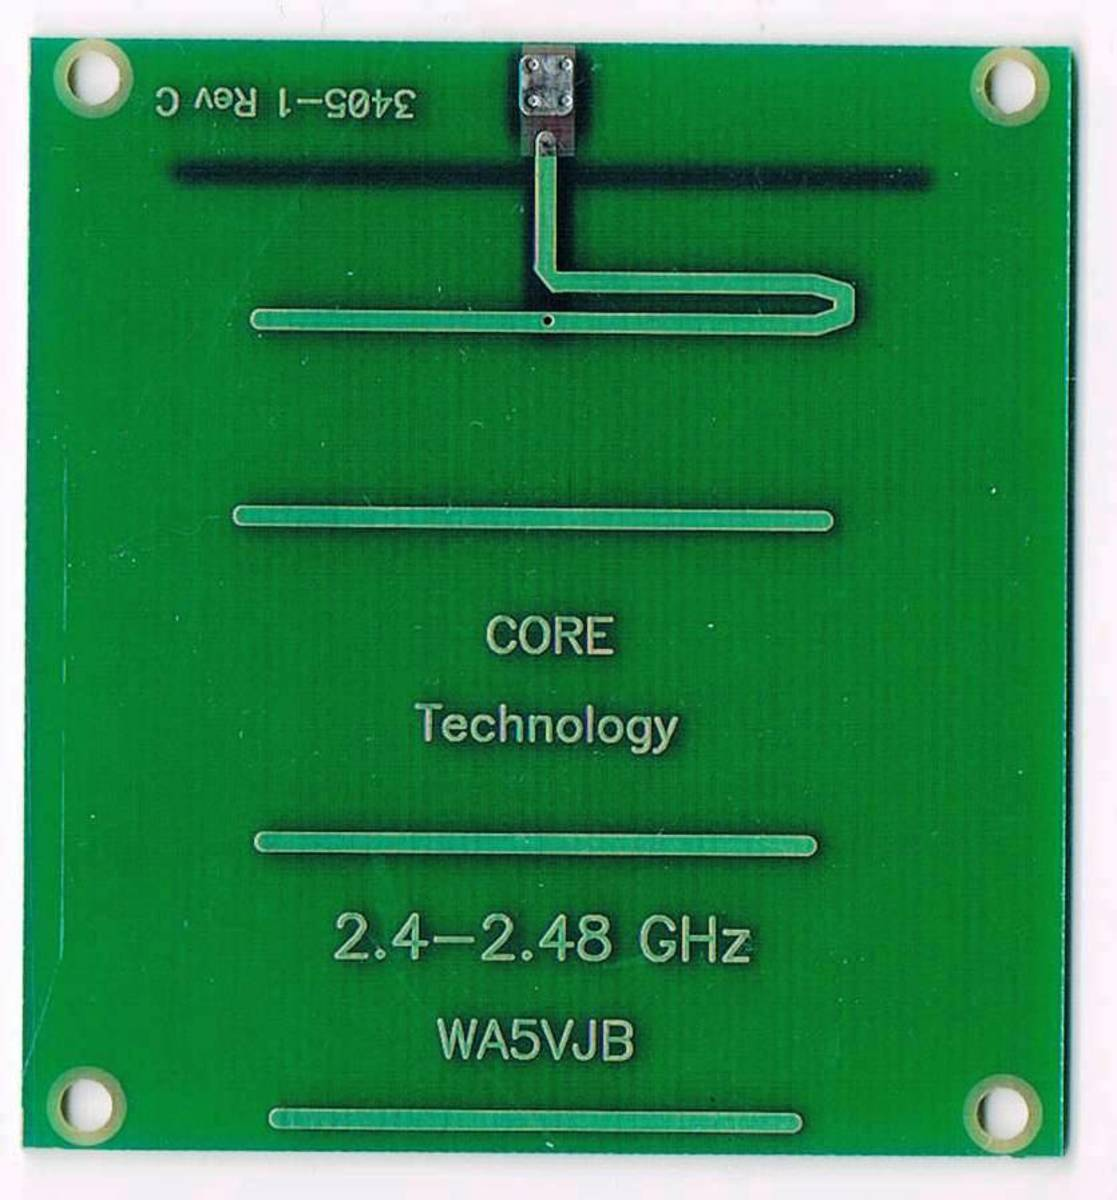 You can build UHF radios using your own antennas such as this one from WA5VJB.com.